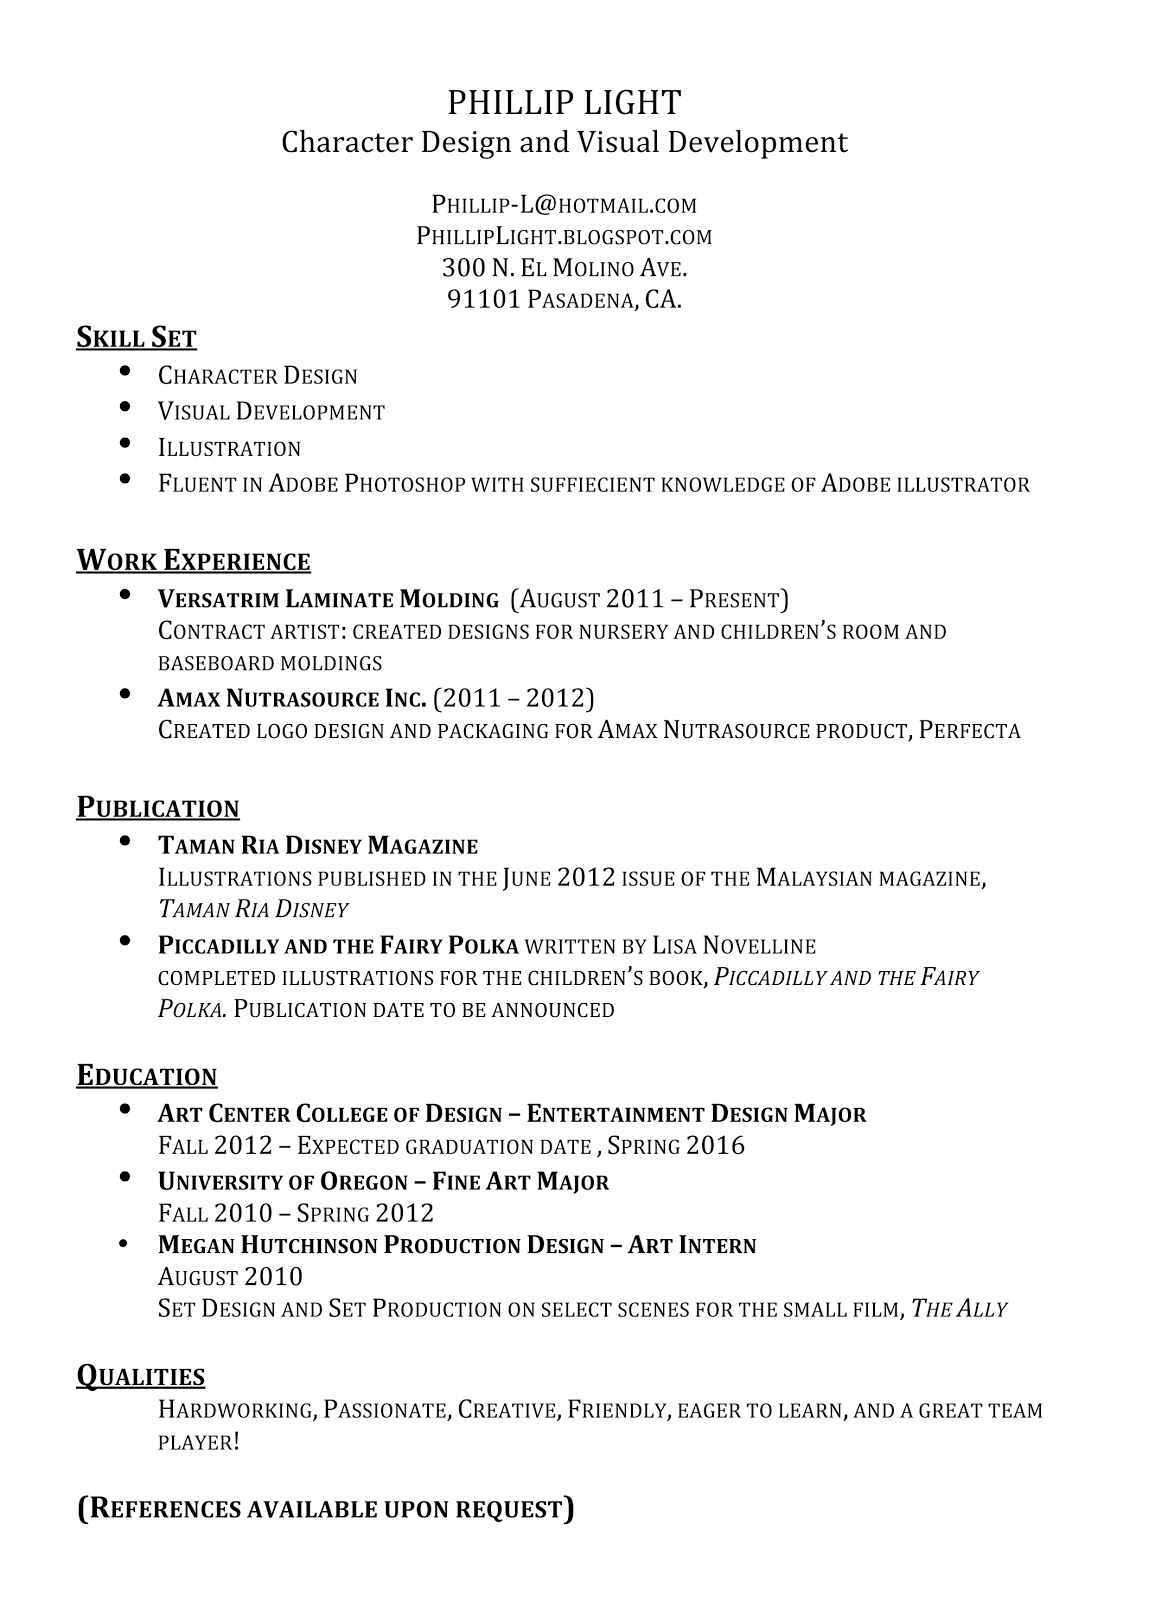 receptionist resume help resume bullet points save and continue some resume like resume images about job customer service resume